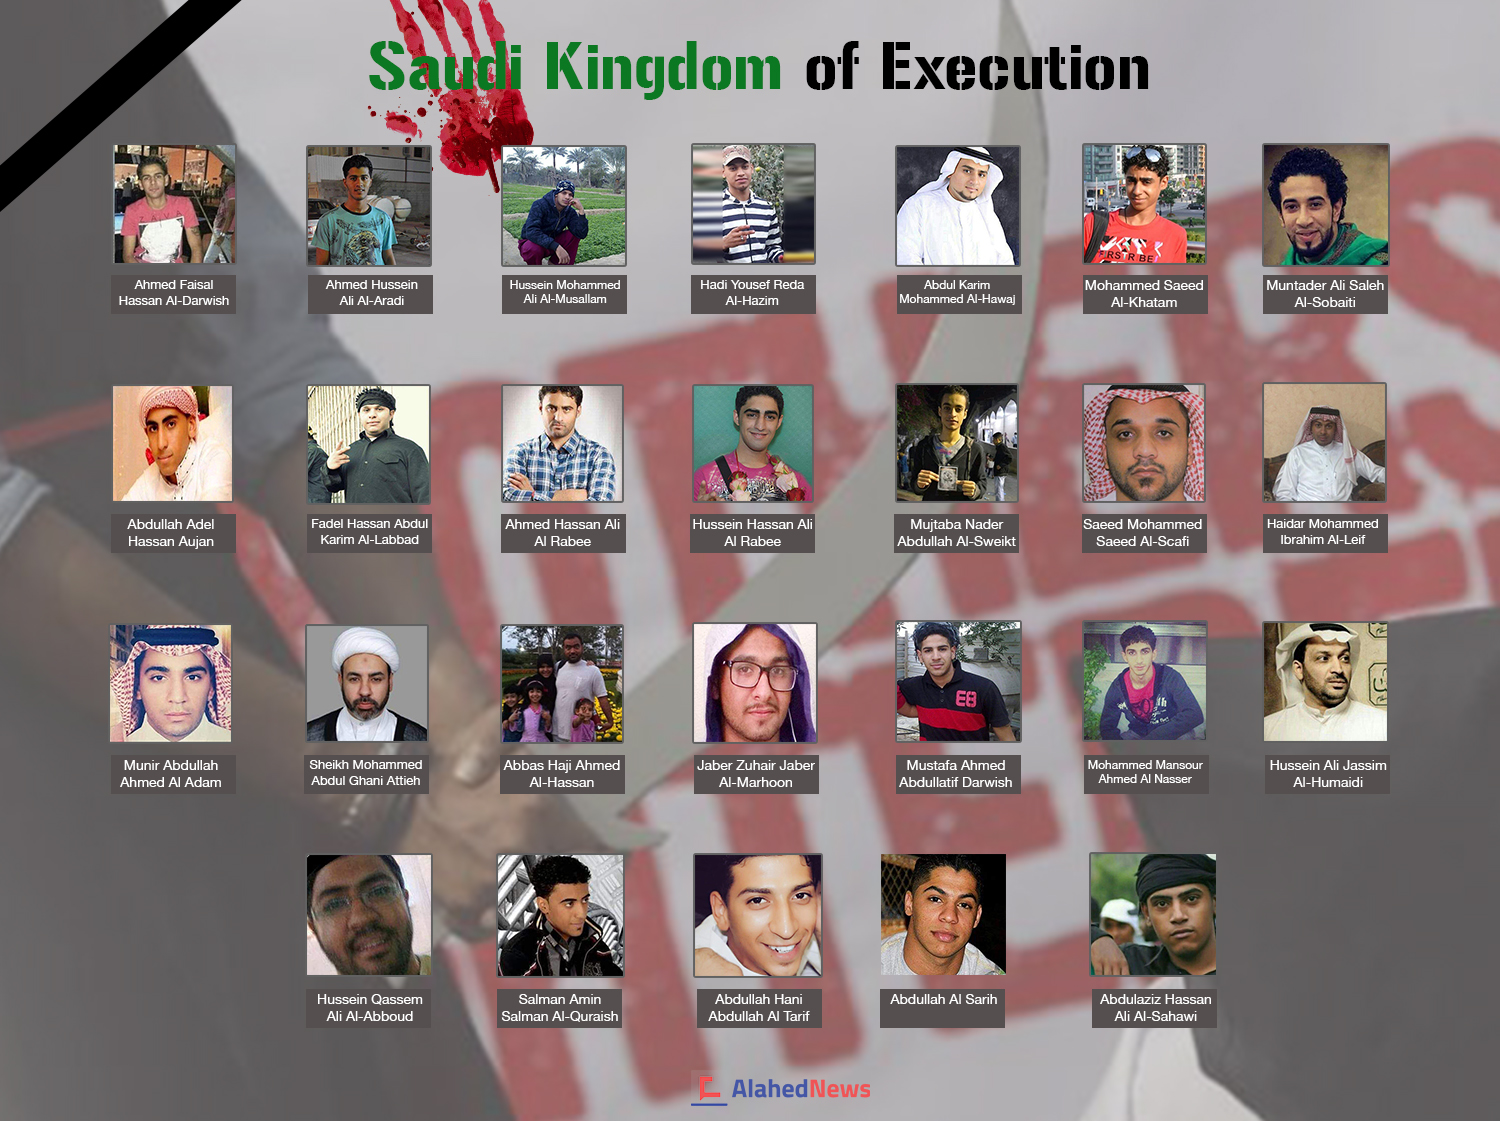 Martyrs of Dignity: Saudis Beheaded for Demanding Respectful Life